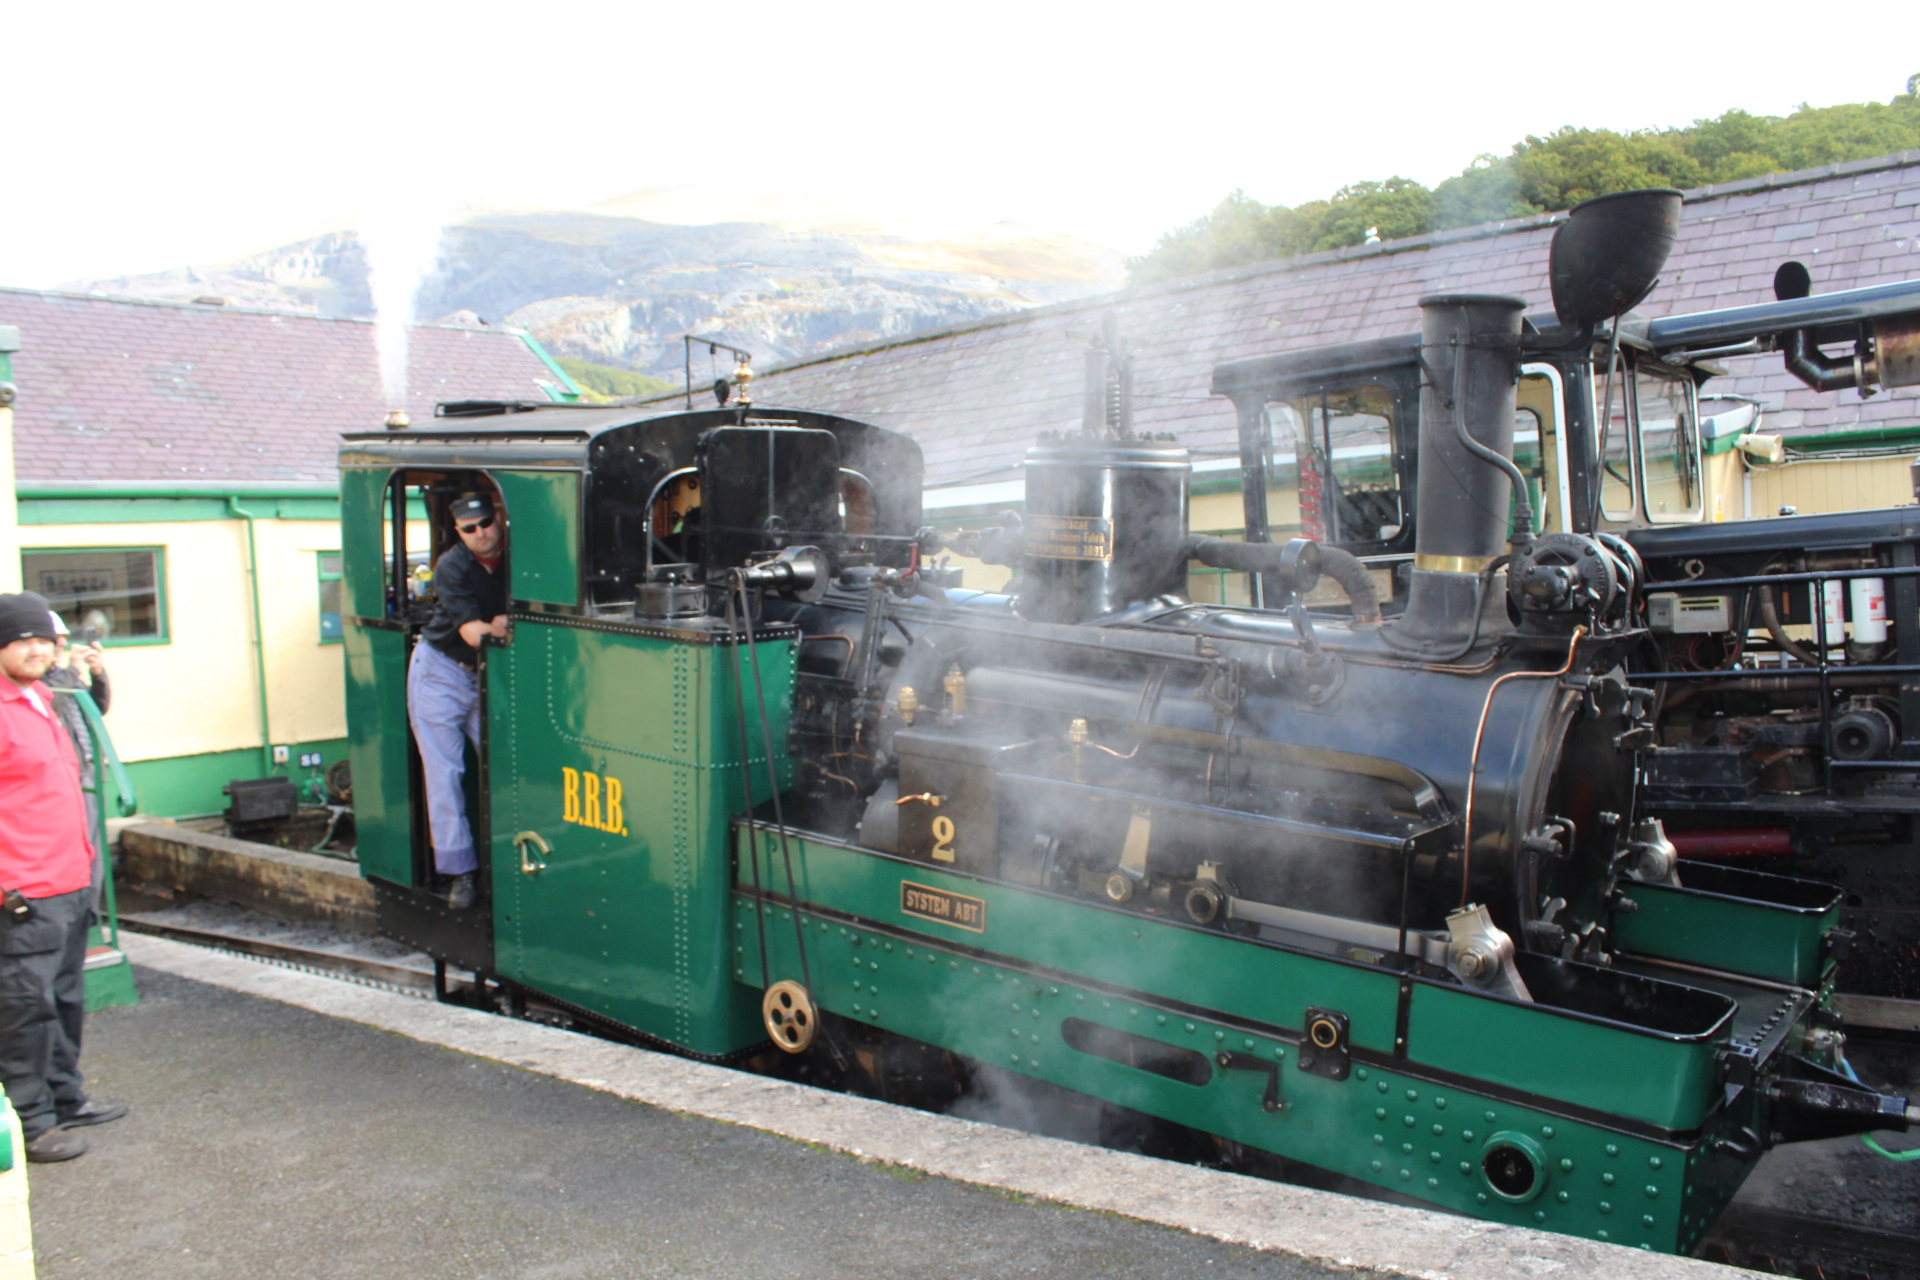 Swiss steam engine from the Brienz Rothorn Bahn is currently visiting Snowdon Mountain Railway